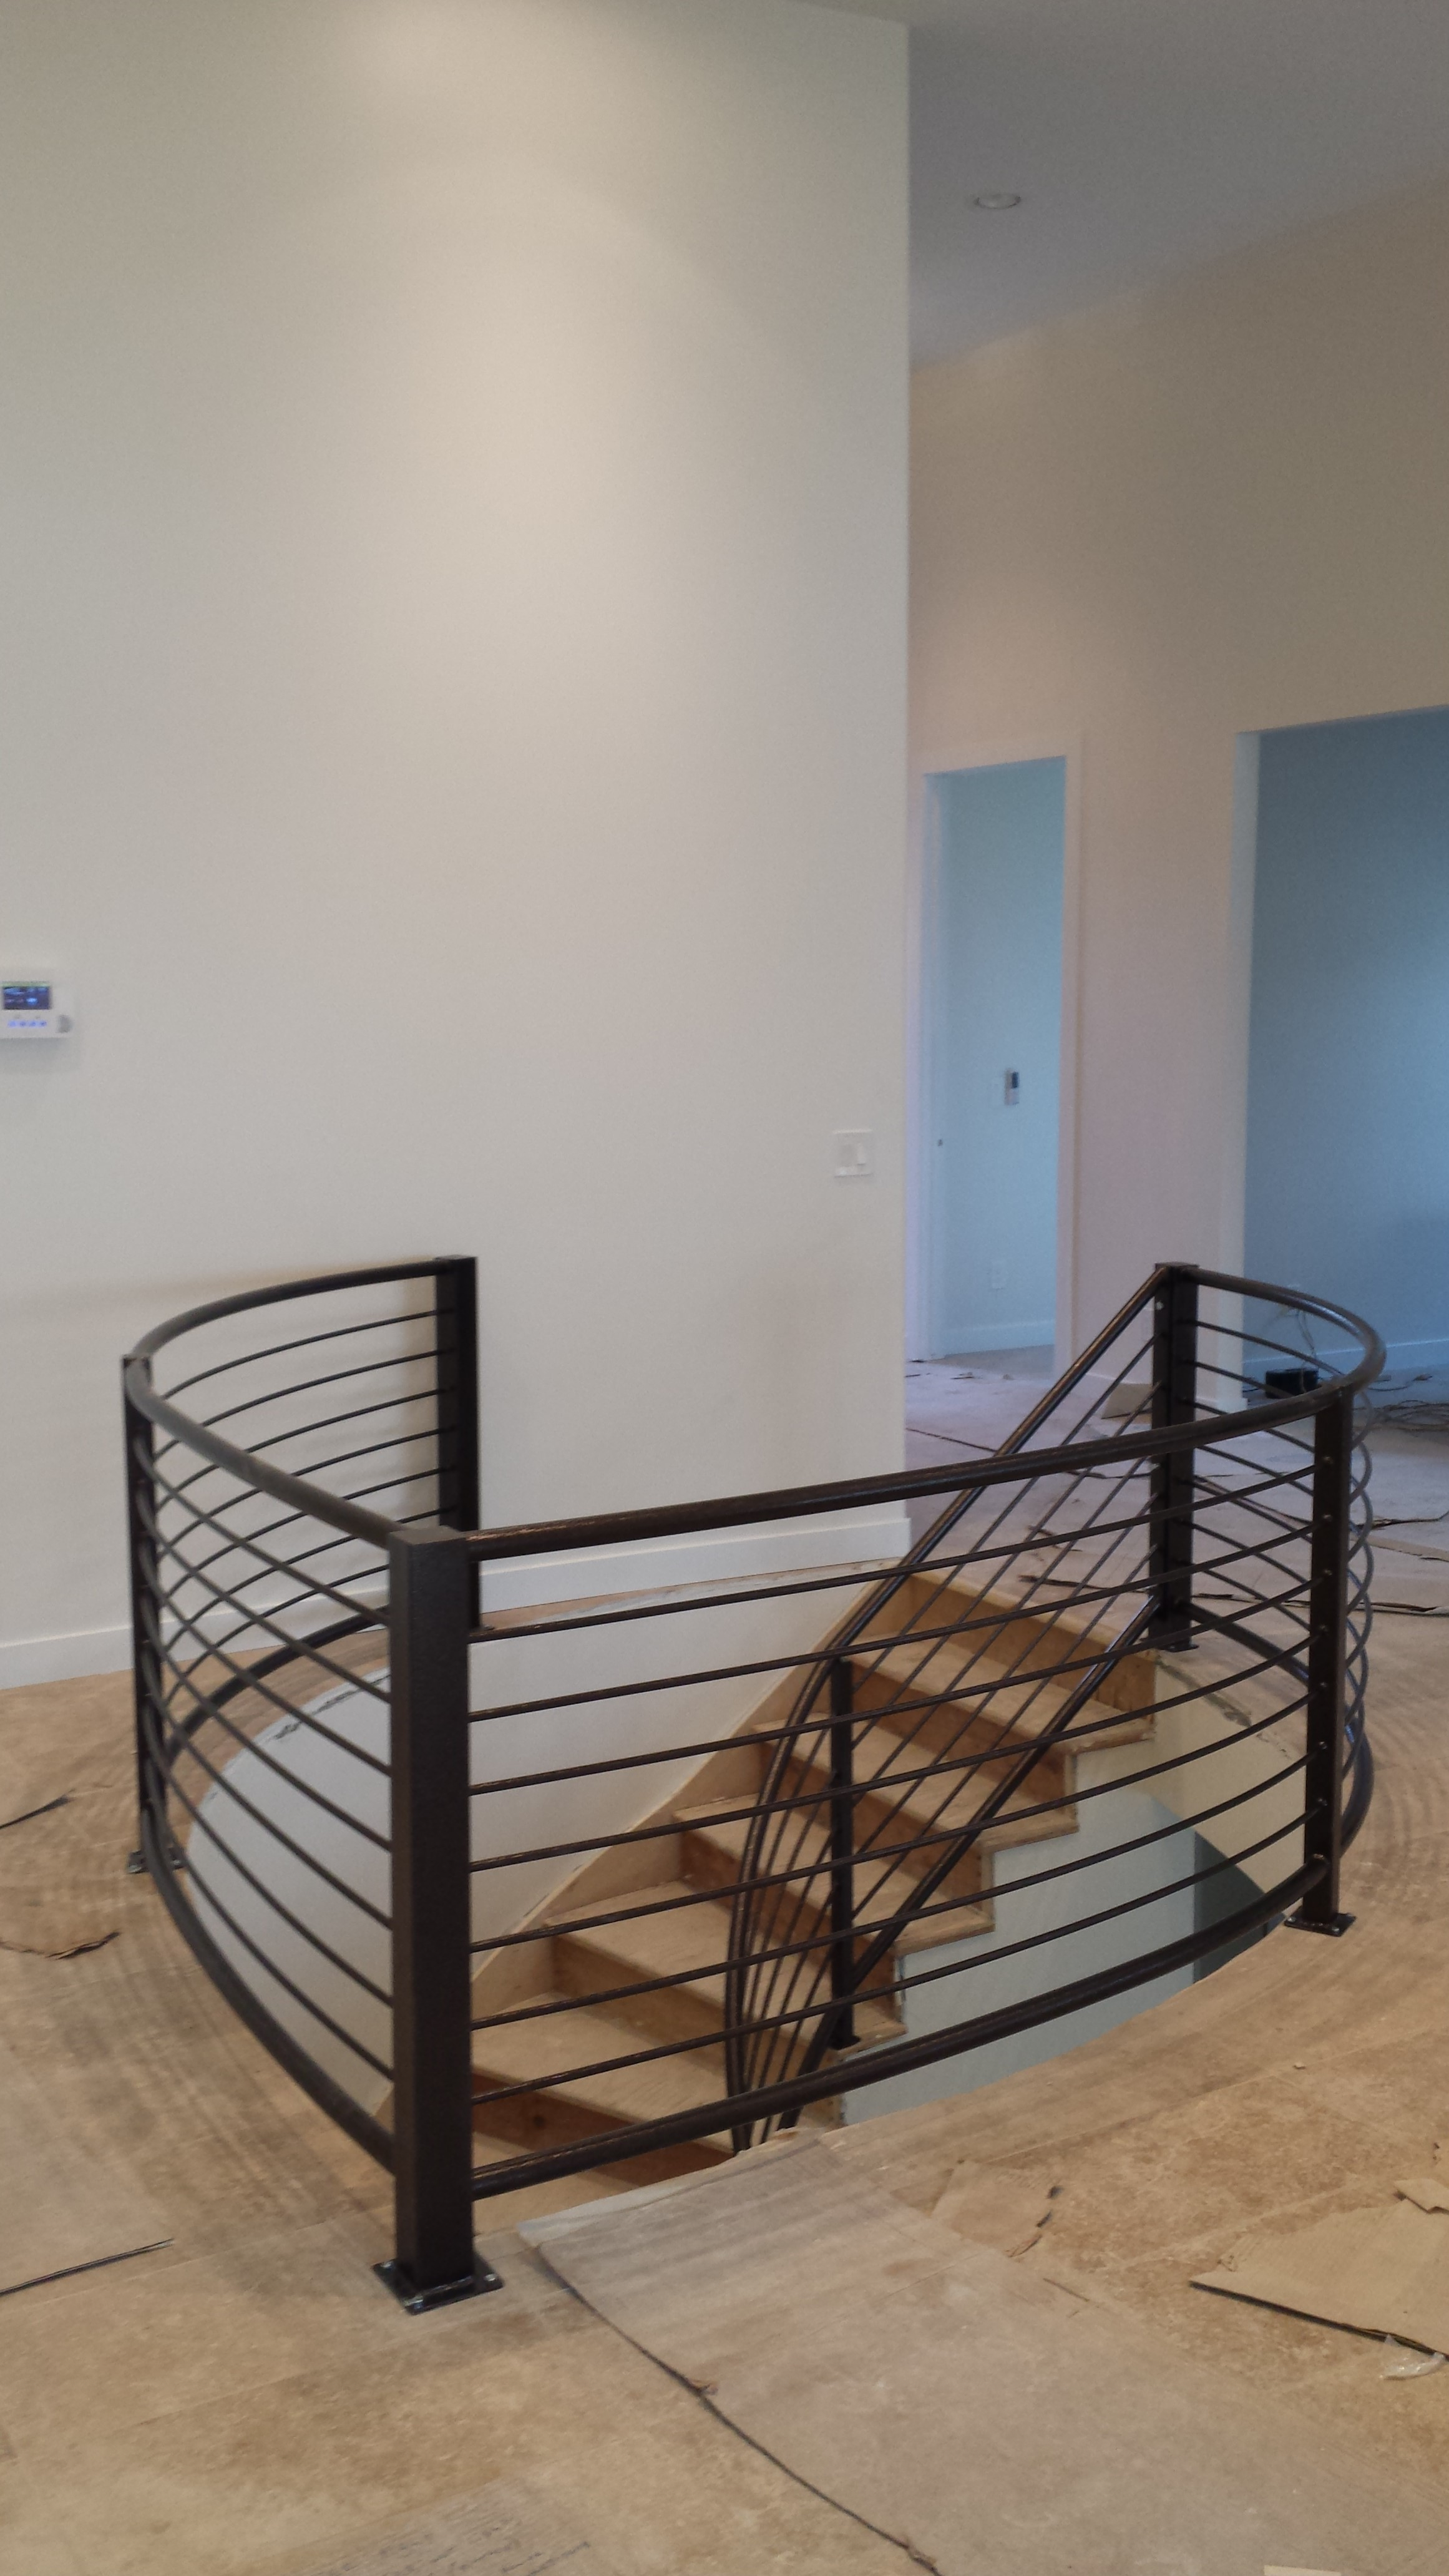 balcony stir ideas modern standards size and staircase post industril deck kits rail standard tread stircse bnister regs hndril interior banister building above australian full stairs railing step min regulations on best guard for handrails stair code height of handrail